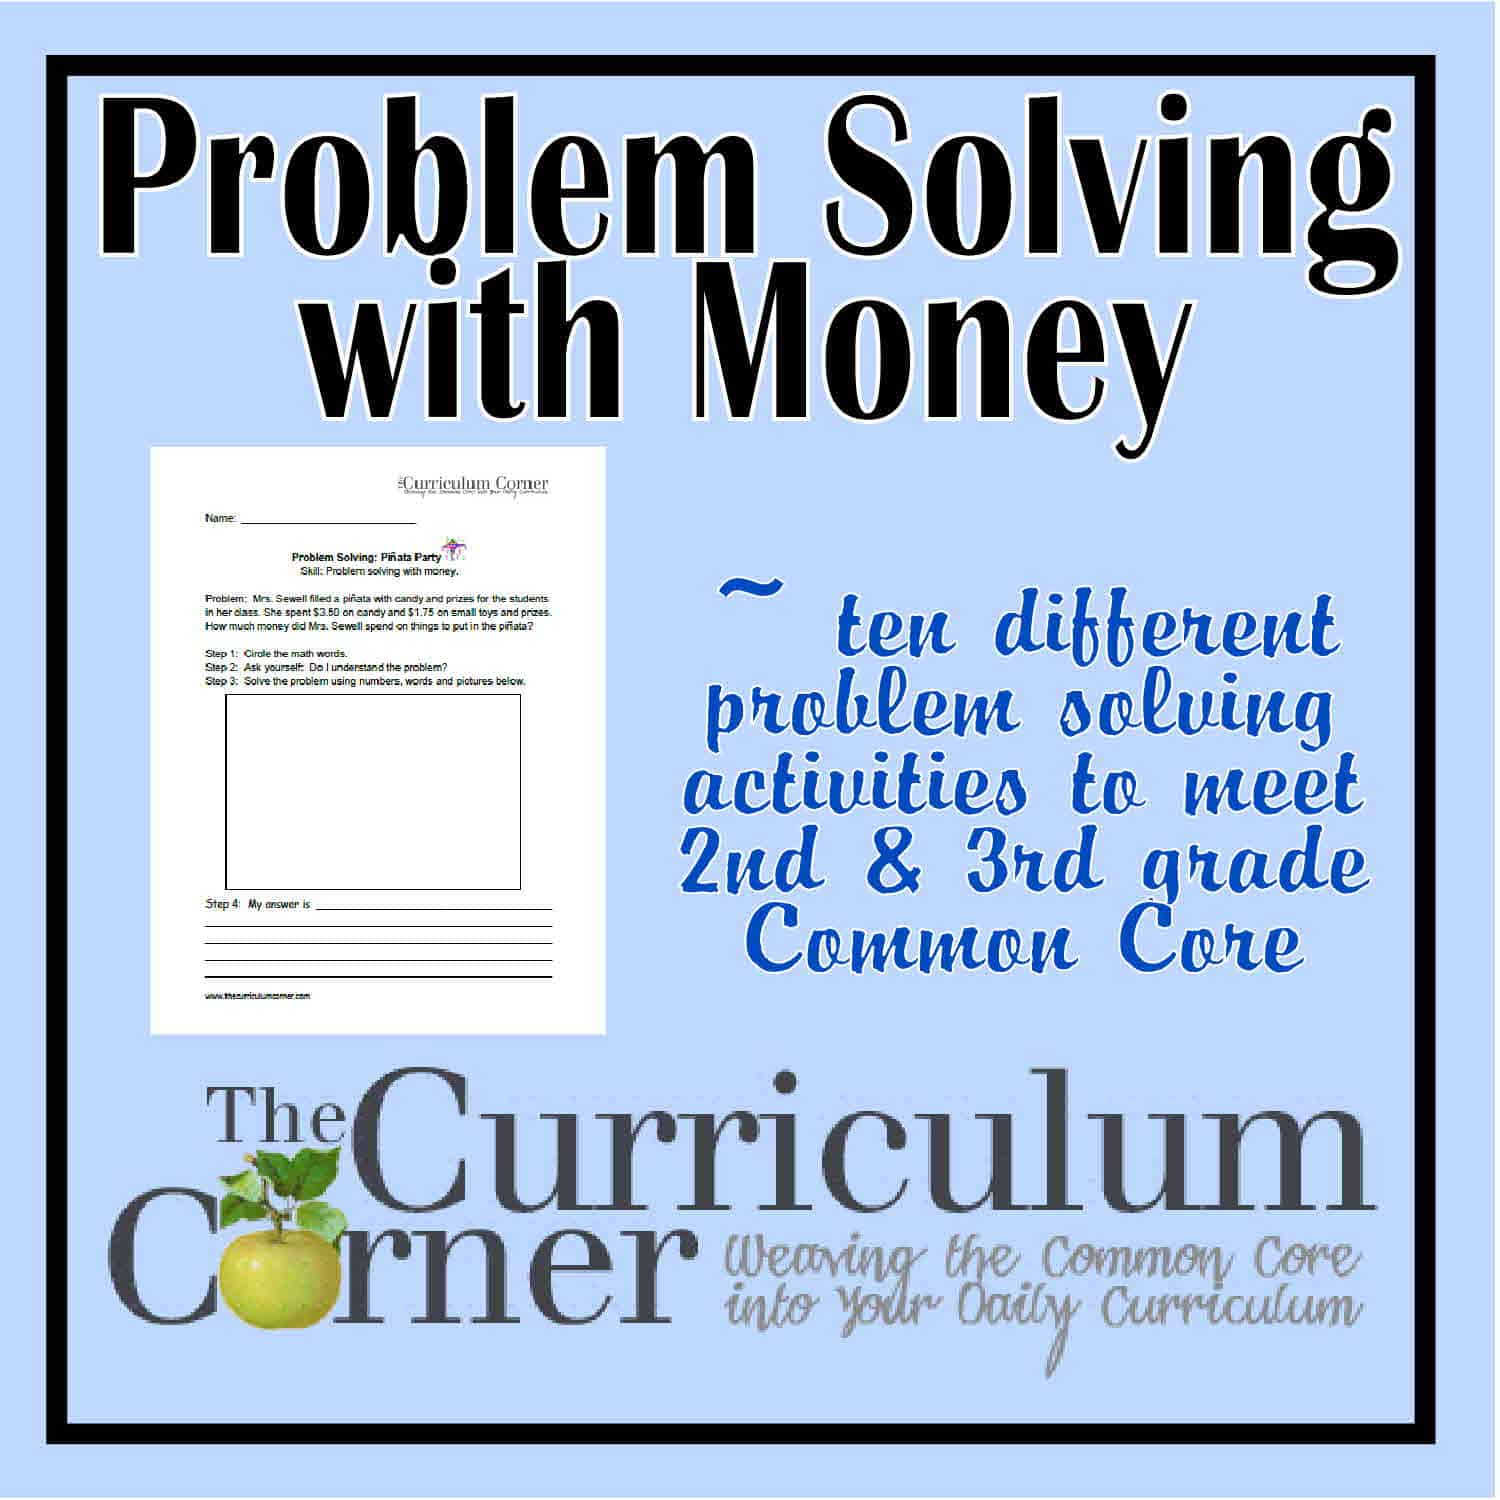 Problem Solving Archives - Page 2 of 3 - The Curriculum Corner 123